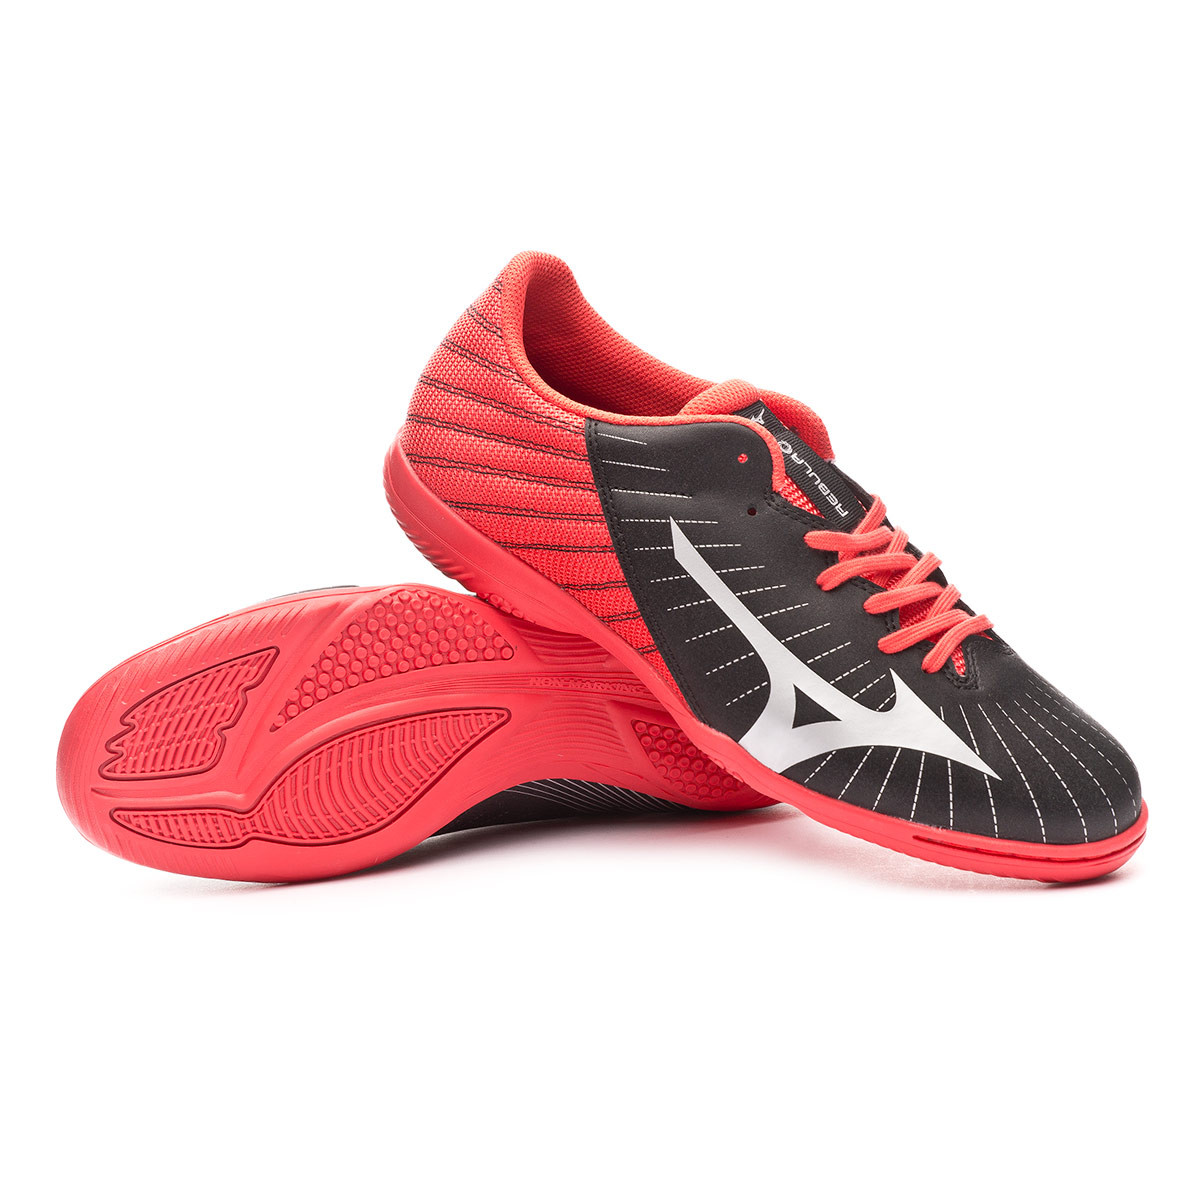 tenis mizuno liverpool 02 03 jeans youtube